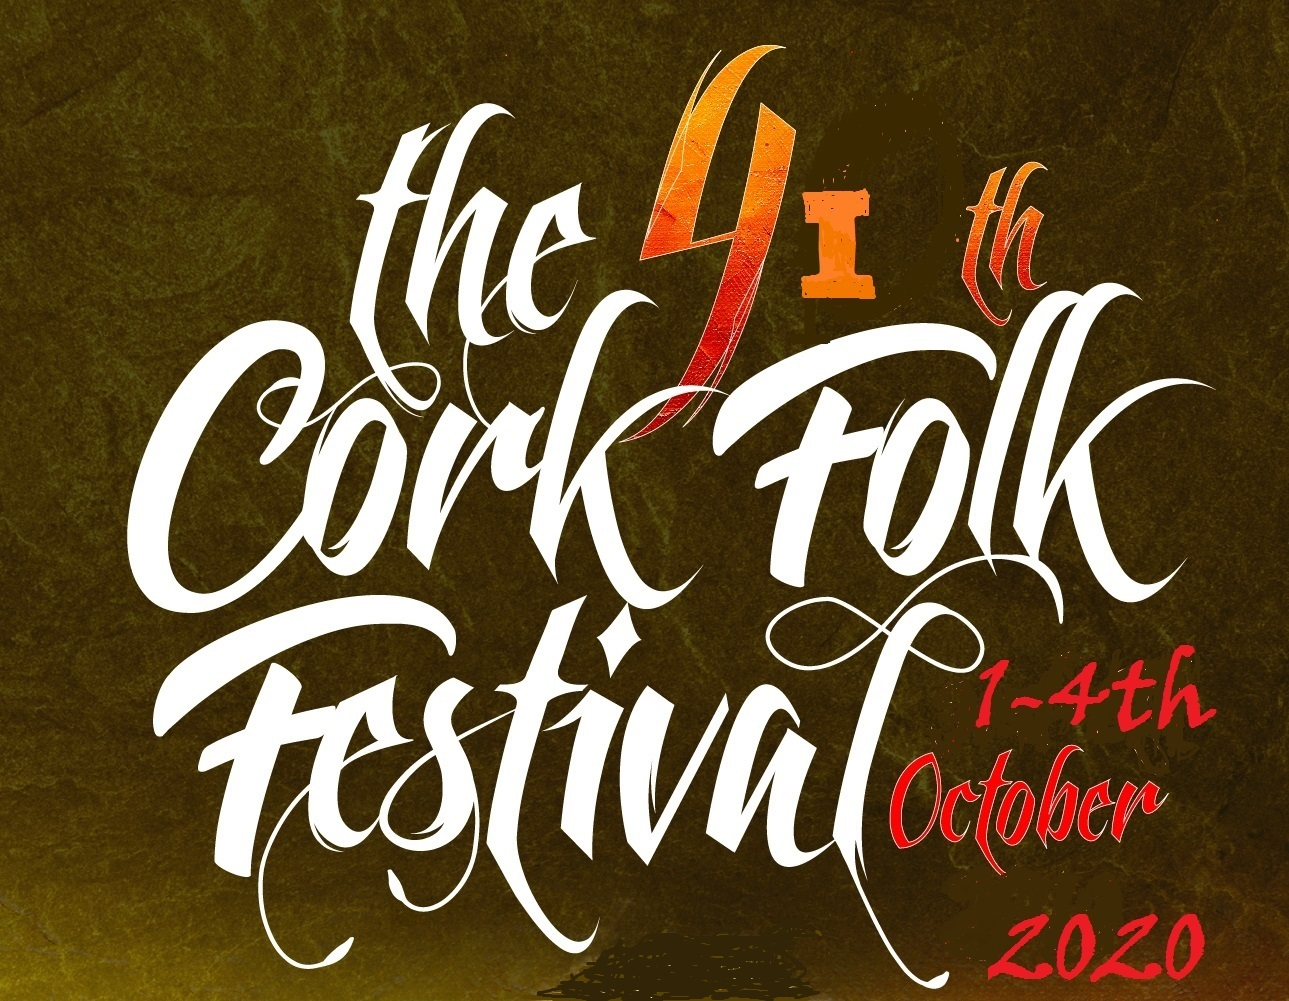 Cork Folk Festival - Cork, Ireland  1st-4th October 2020